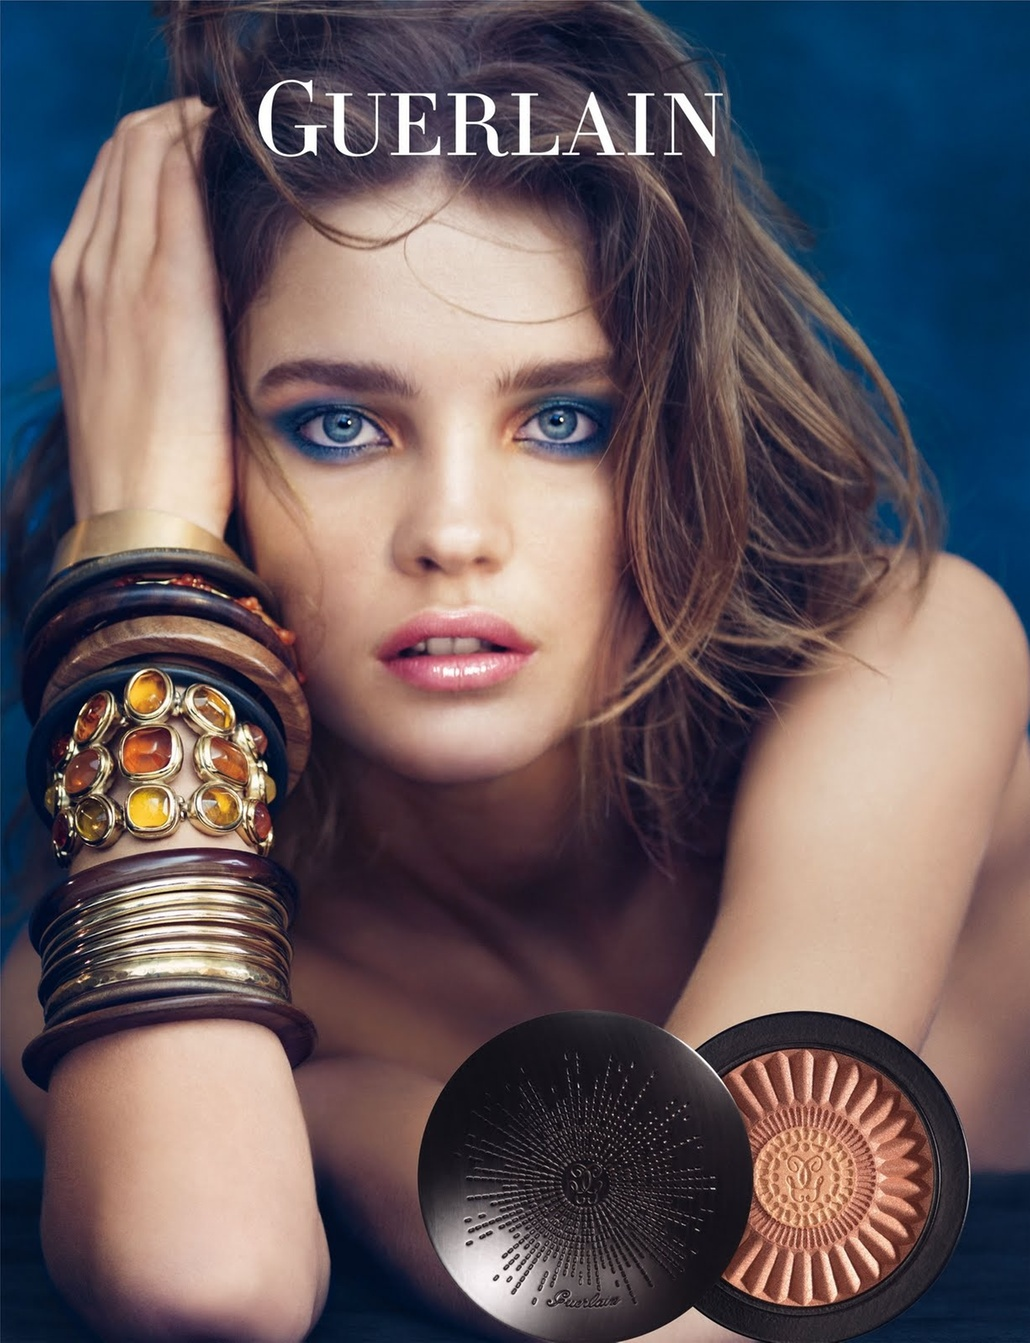 Abril: A supermodelo Natalia Vodianova confirma sua parceria com a Guerlain e aparece em nova campanha da marca. A nova coleo, cujos produtos vo ser lanados em maio,  inspirada no Machu Picchu e recebeu o nome de Terra Inca